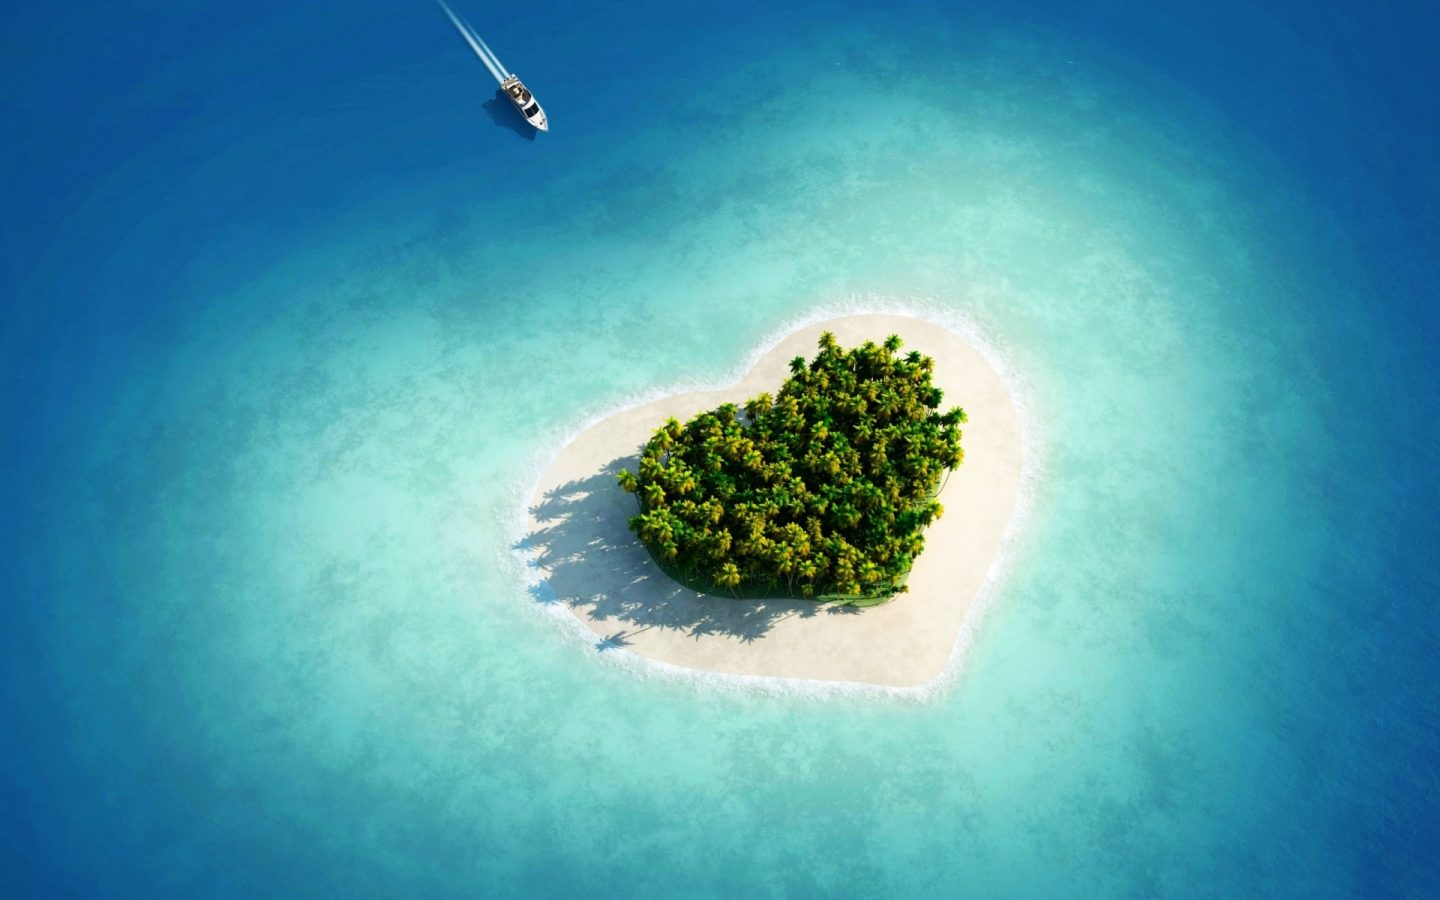 Travel // 10 Heart Shaped Islands